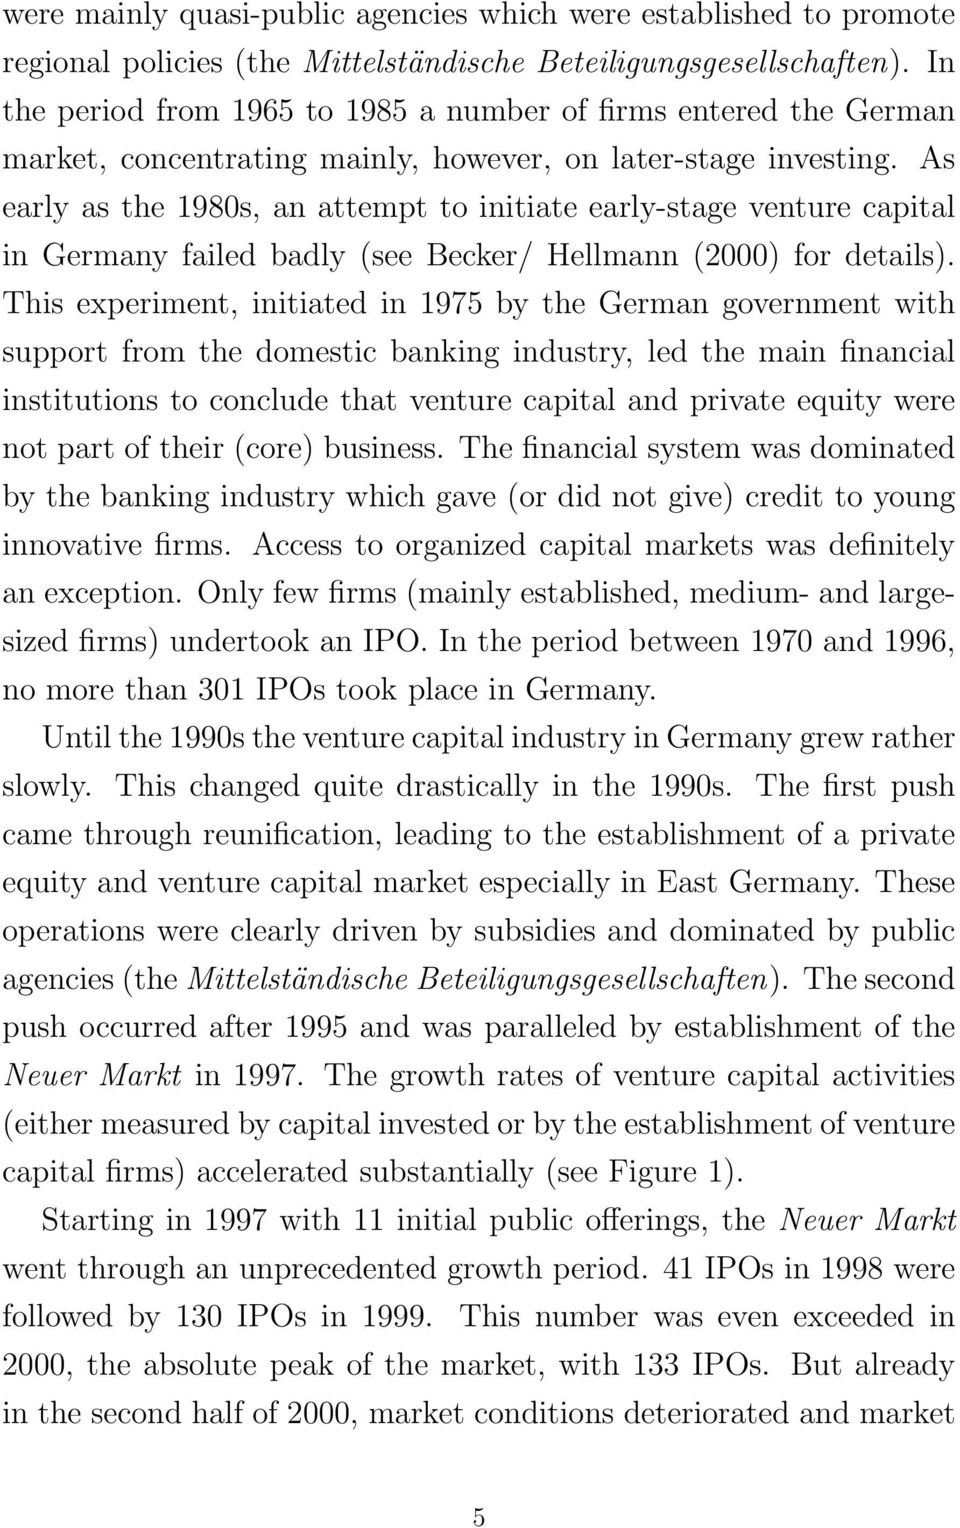 As early as the 1980s, an attempt to initiate early-stage venture capital in Germany failed badly (see Becker/ Hellmann (2000) for details).